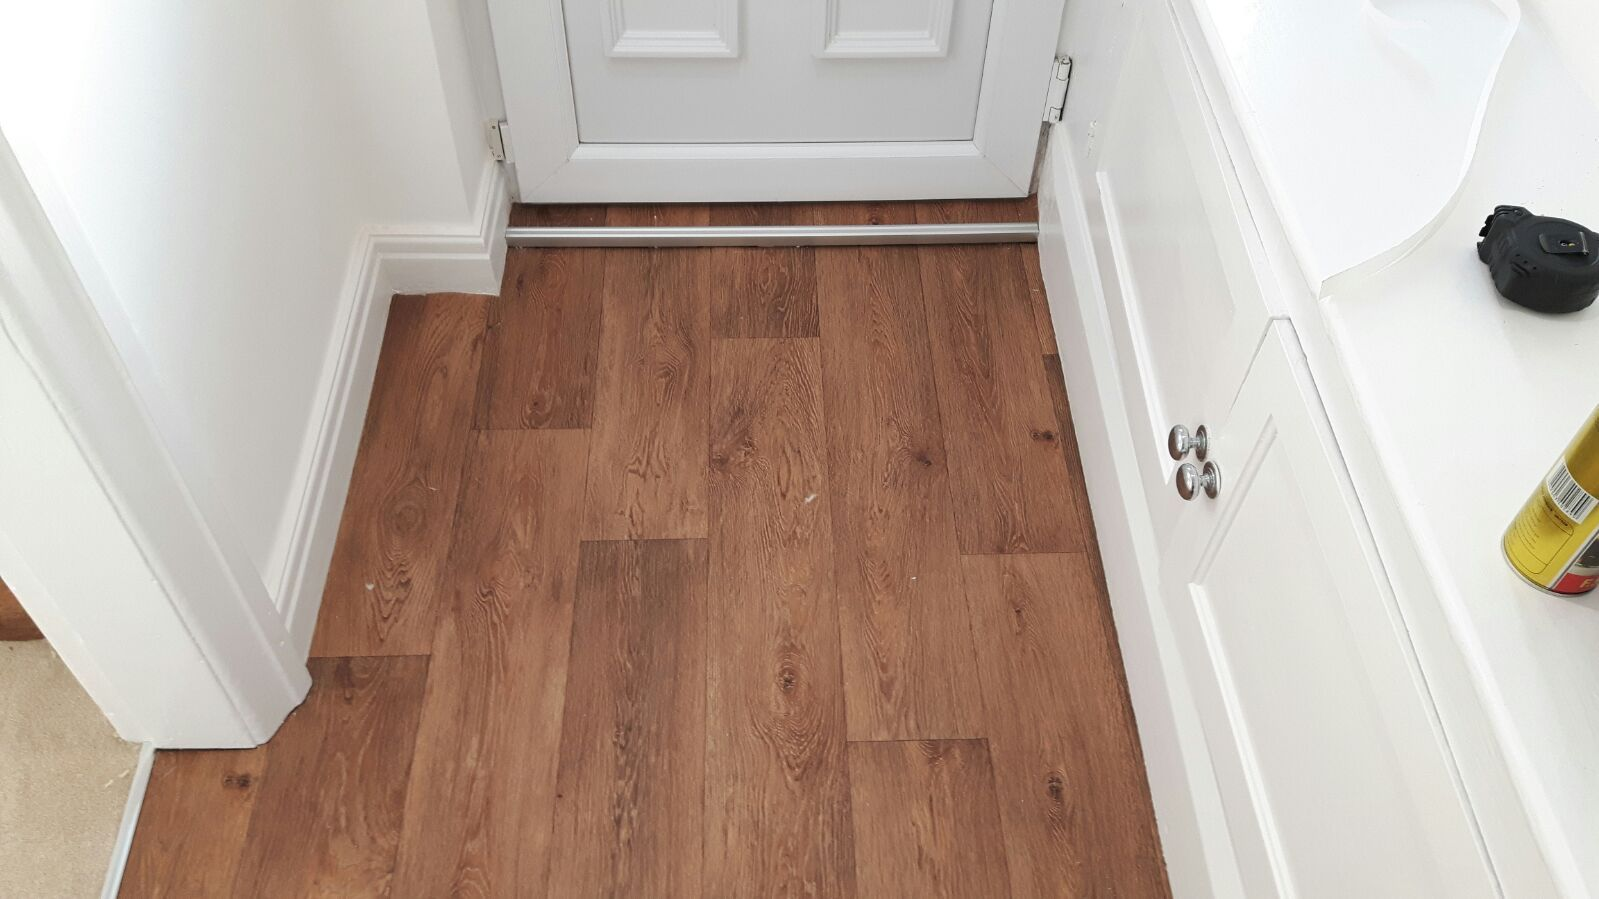 Laminate effect vinyl flooring fitted to a hallway in